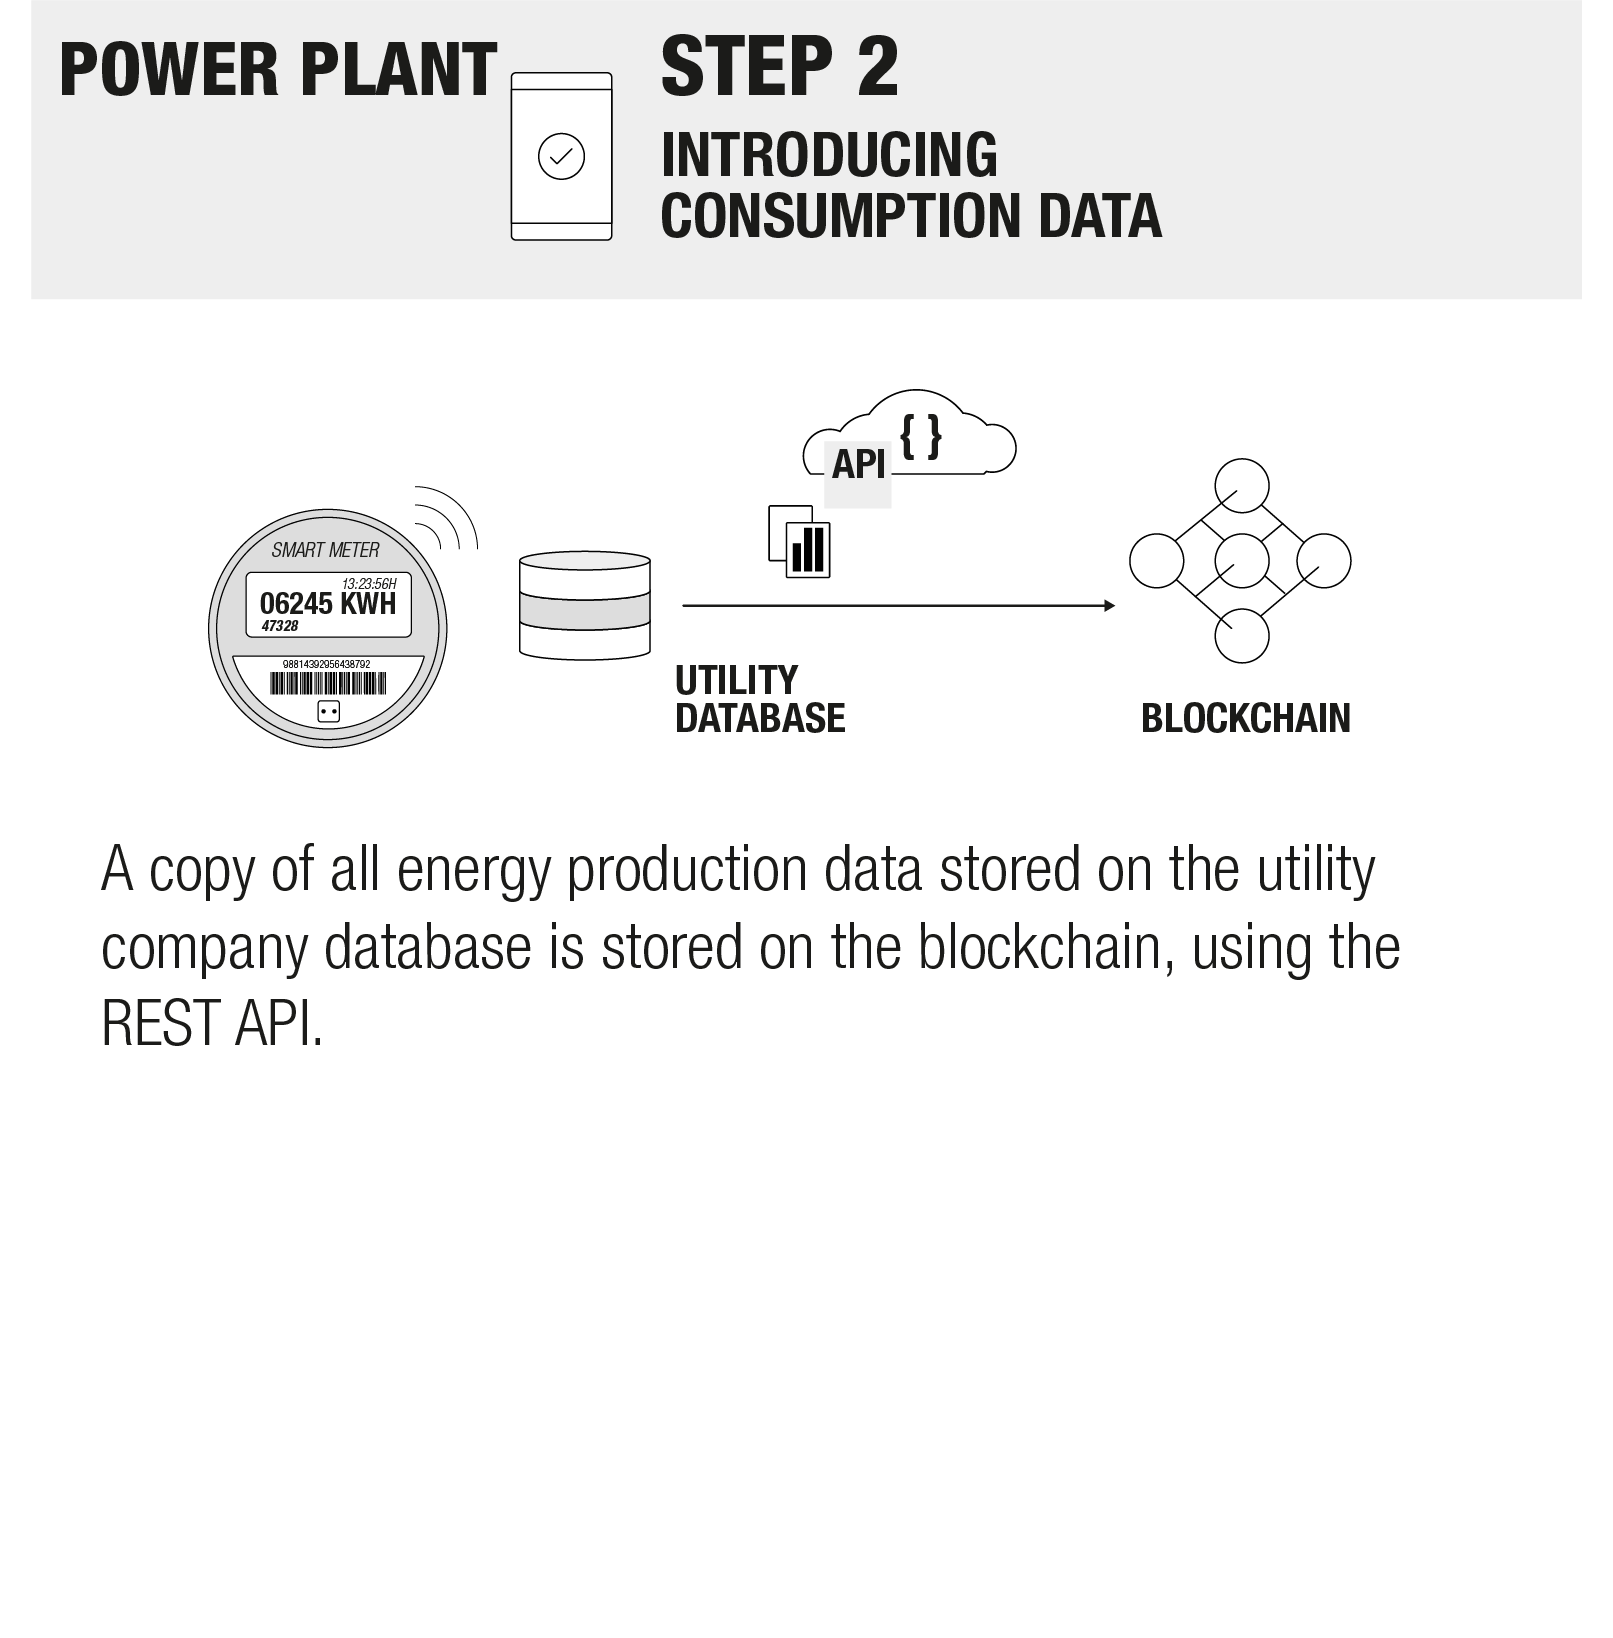 Power_Plant_Introducing_Consumption_Data..png